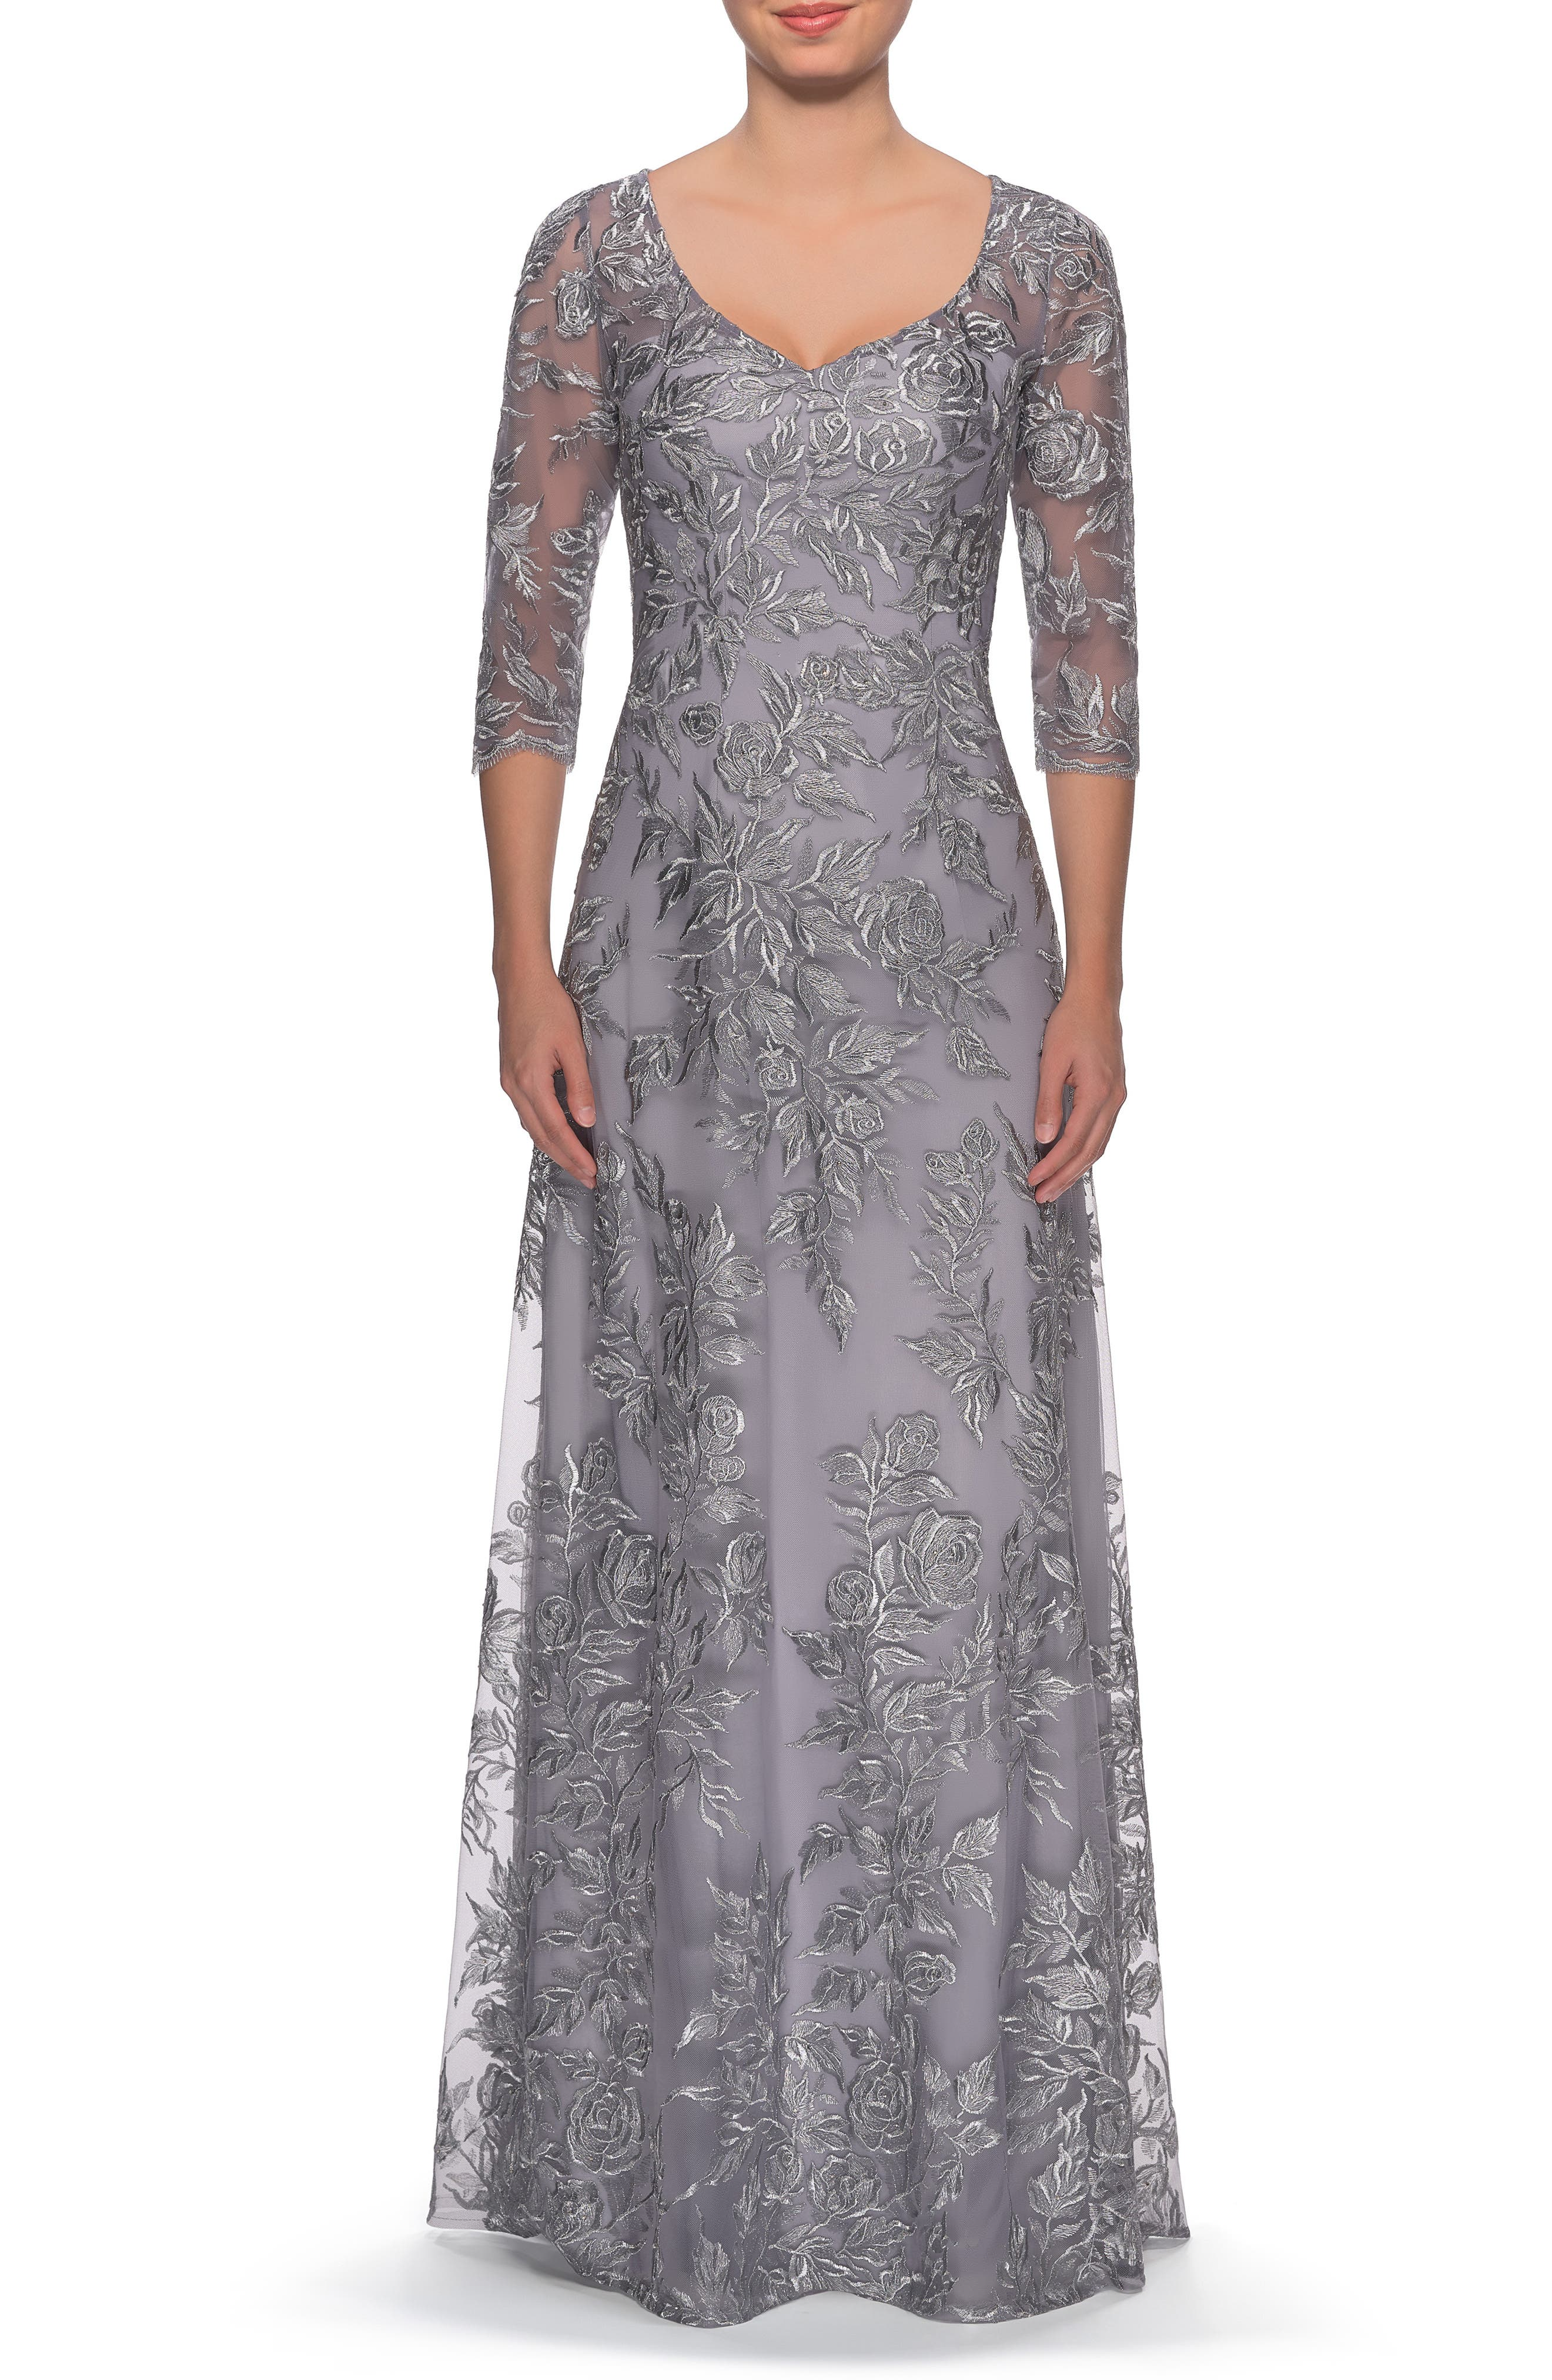 1940s Formal Dresses, Evening Gowns History Womens La Femme Floral Embroidered Mesh Evening Dress Size 10 - Metallic $278.00 AT vintagedancer.com